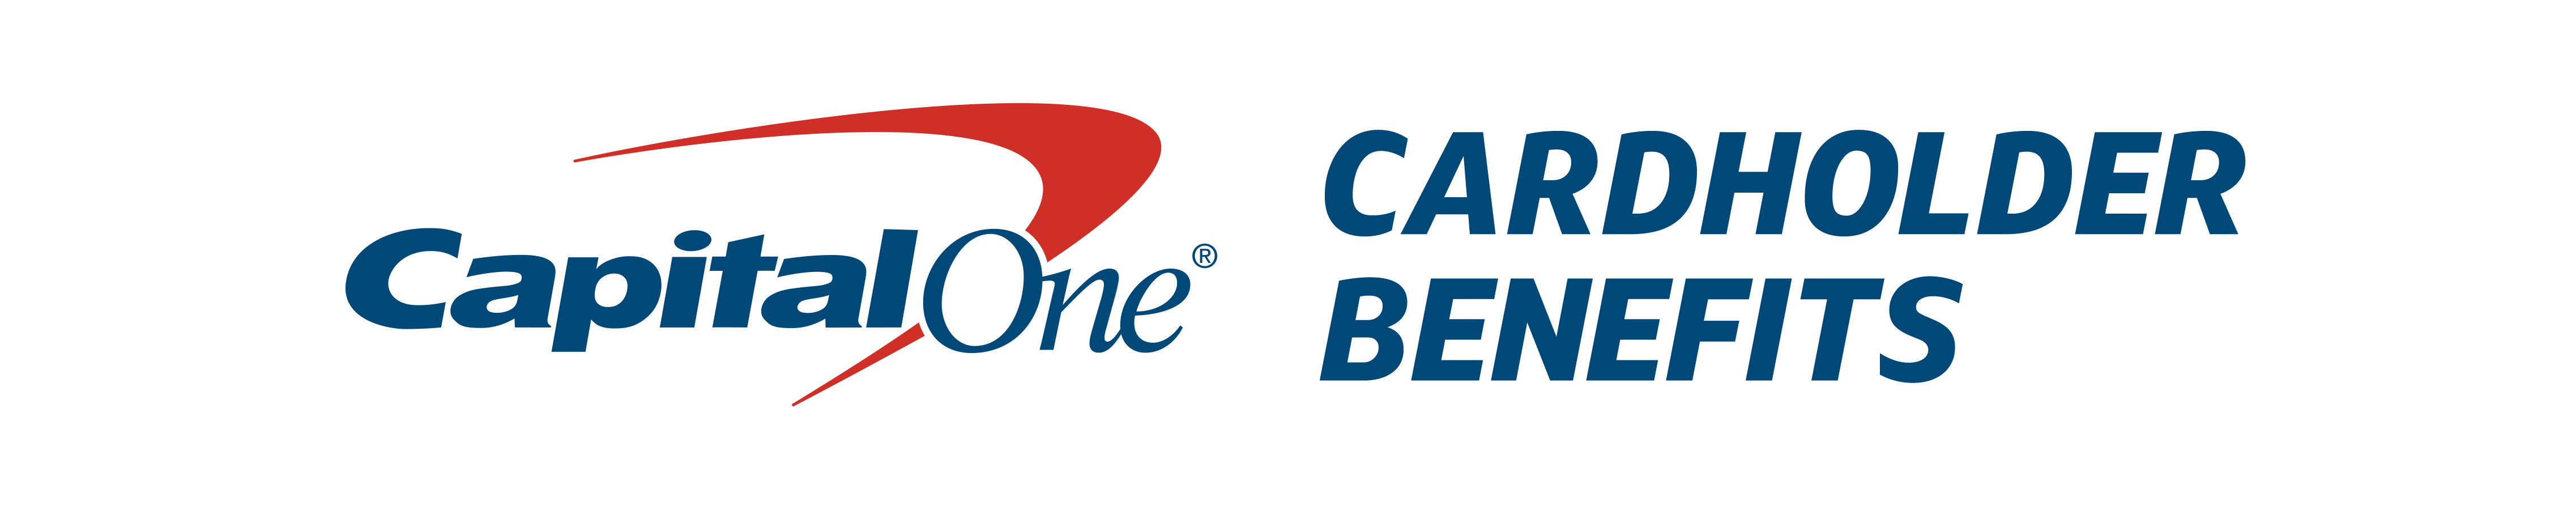 Washington vector capitol us. Home page capital one